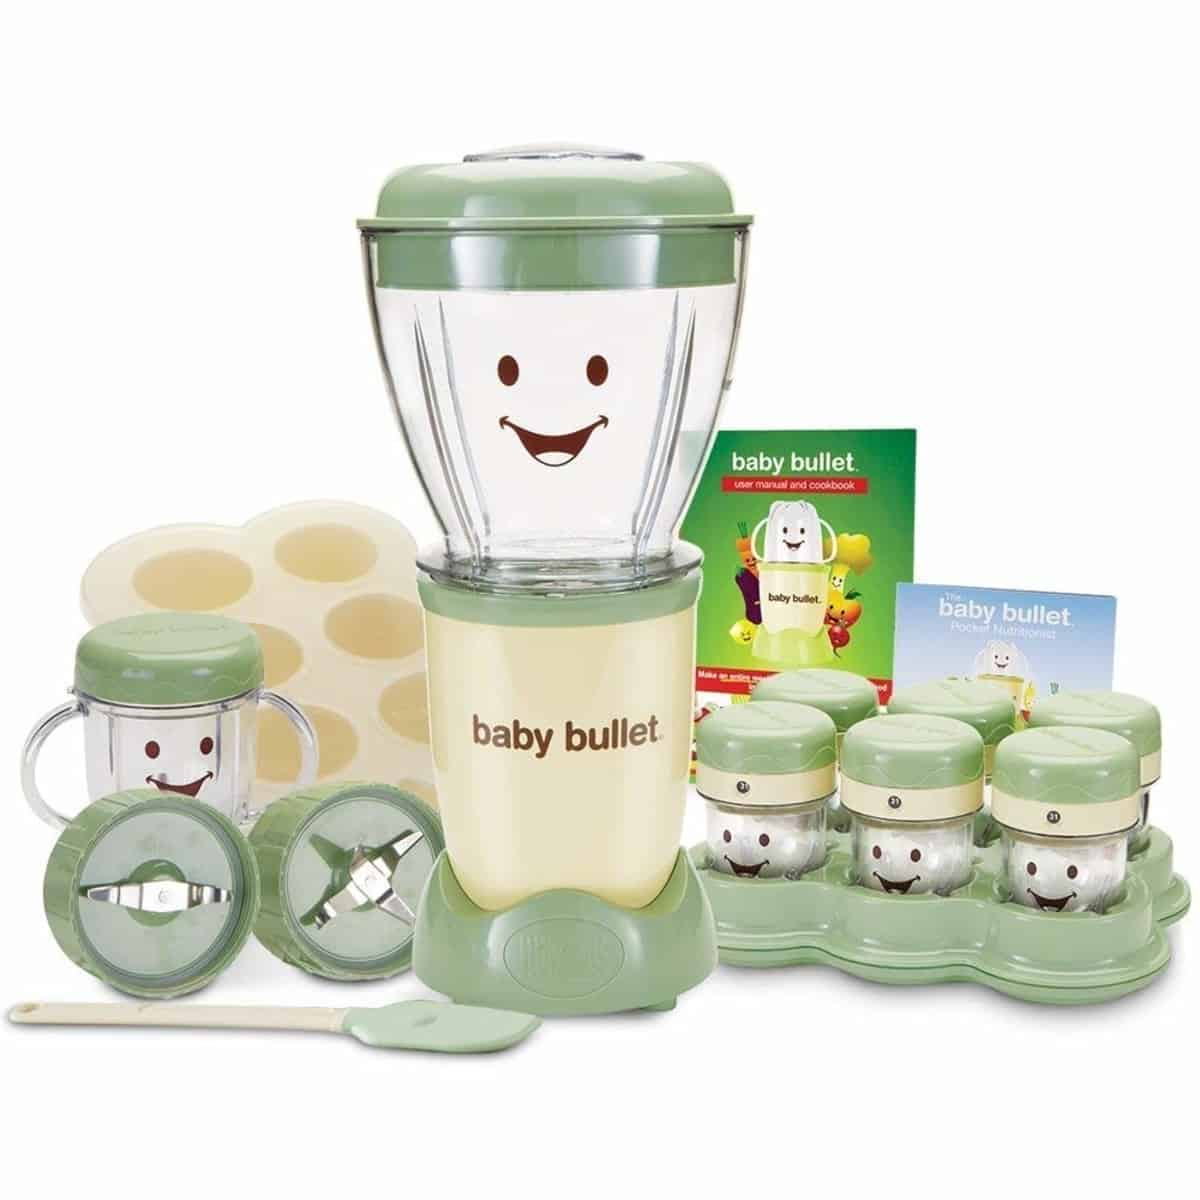 Magic Bullet Baby Bullet Baby Care System. 6-date dial storage cups, spatula, 1 short cup, 1 stay fresh resealable lid and tip proof tray, user manual and recipe book, pocket nutritionist